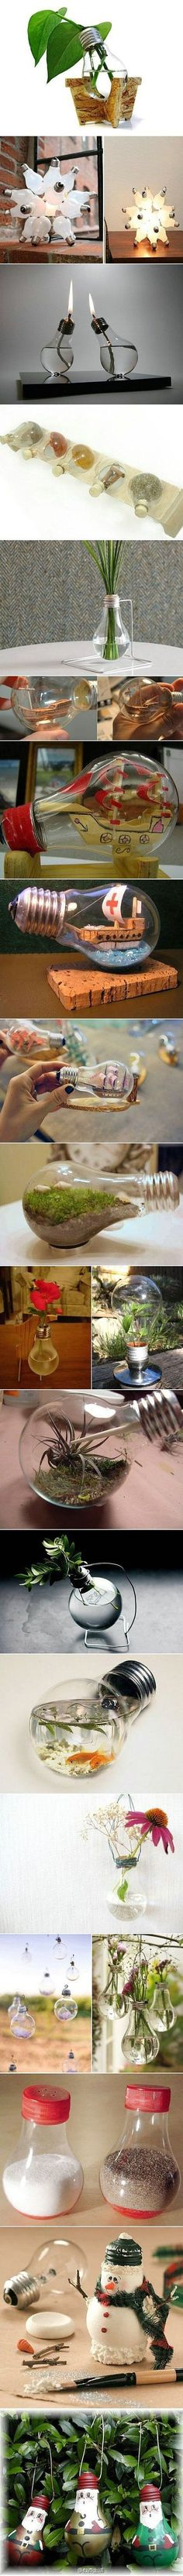 Having Fun With DIY Light Bulb Projects-usefuldiyprojects.com (13)